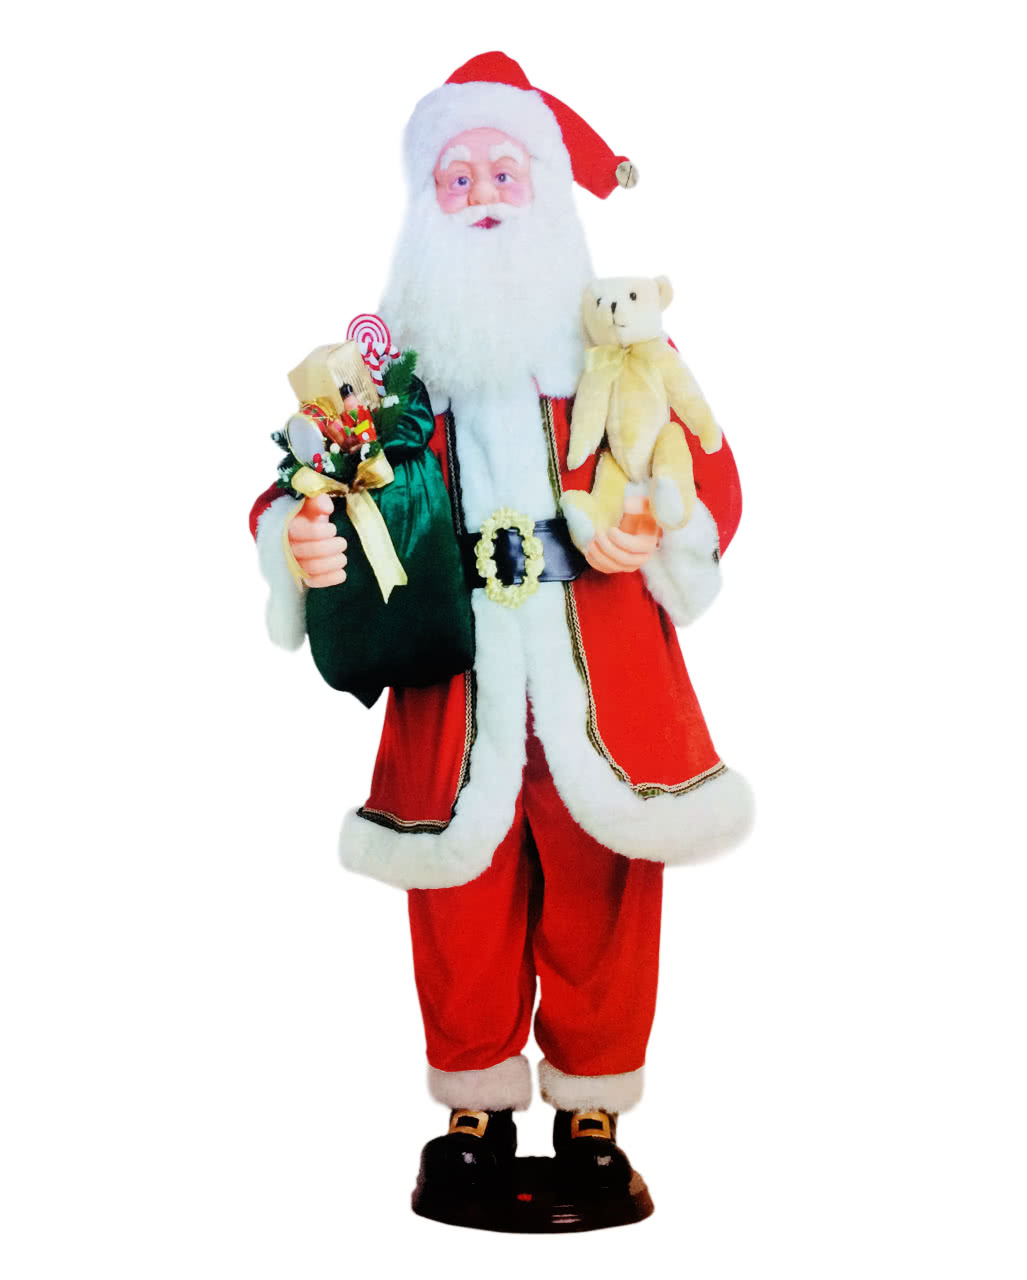 santa claus figure animatronic 150cm - Animatronic Christmas Decorations